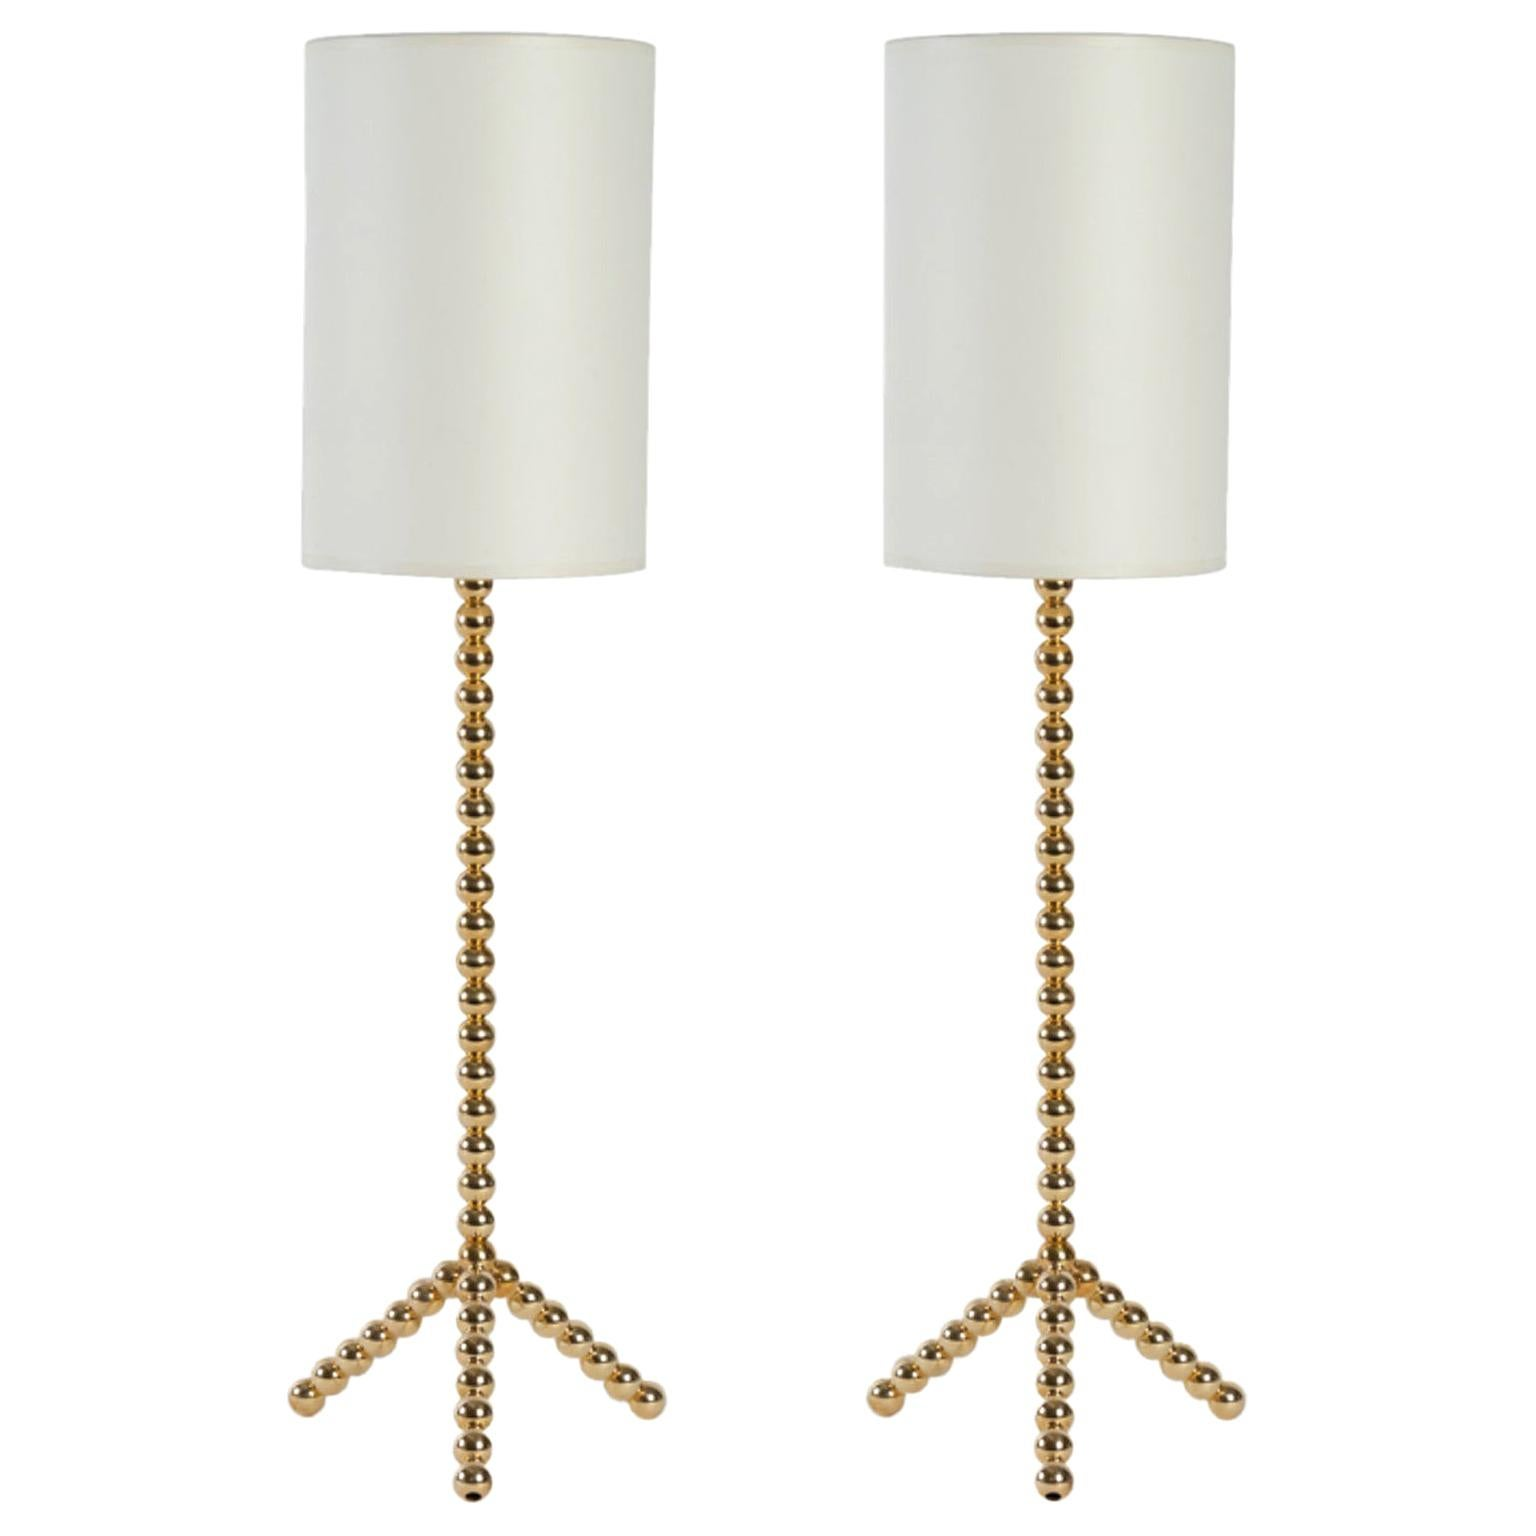 Contemporary Pair of Ribambelle Table Lamps, Vingtieme Edition